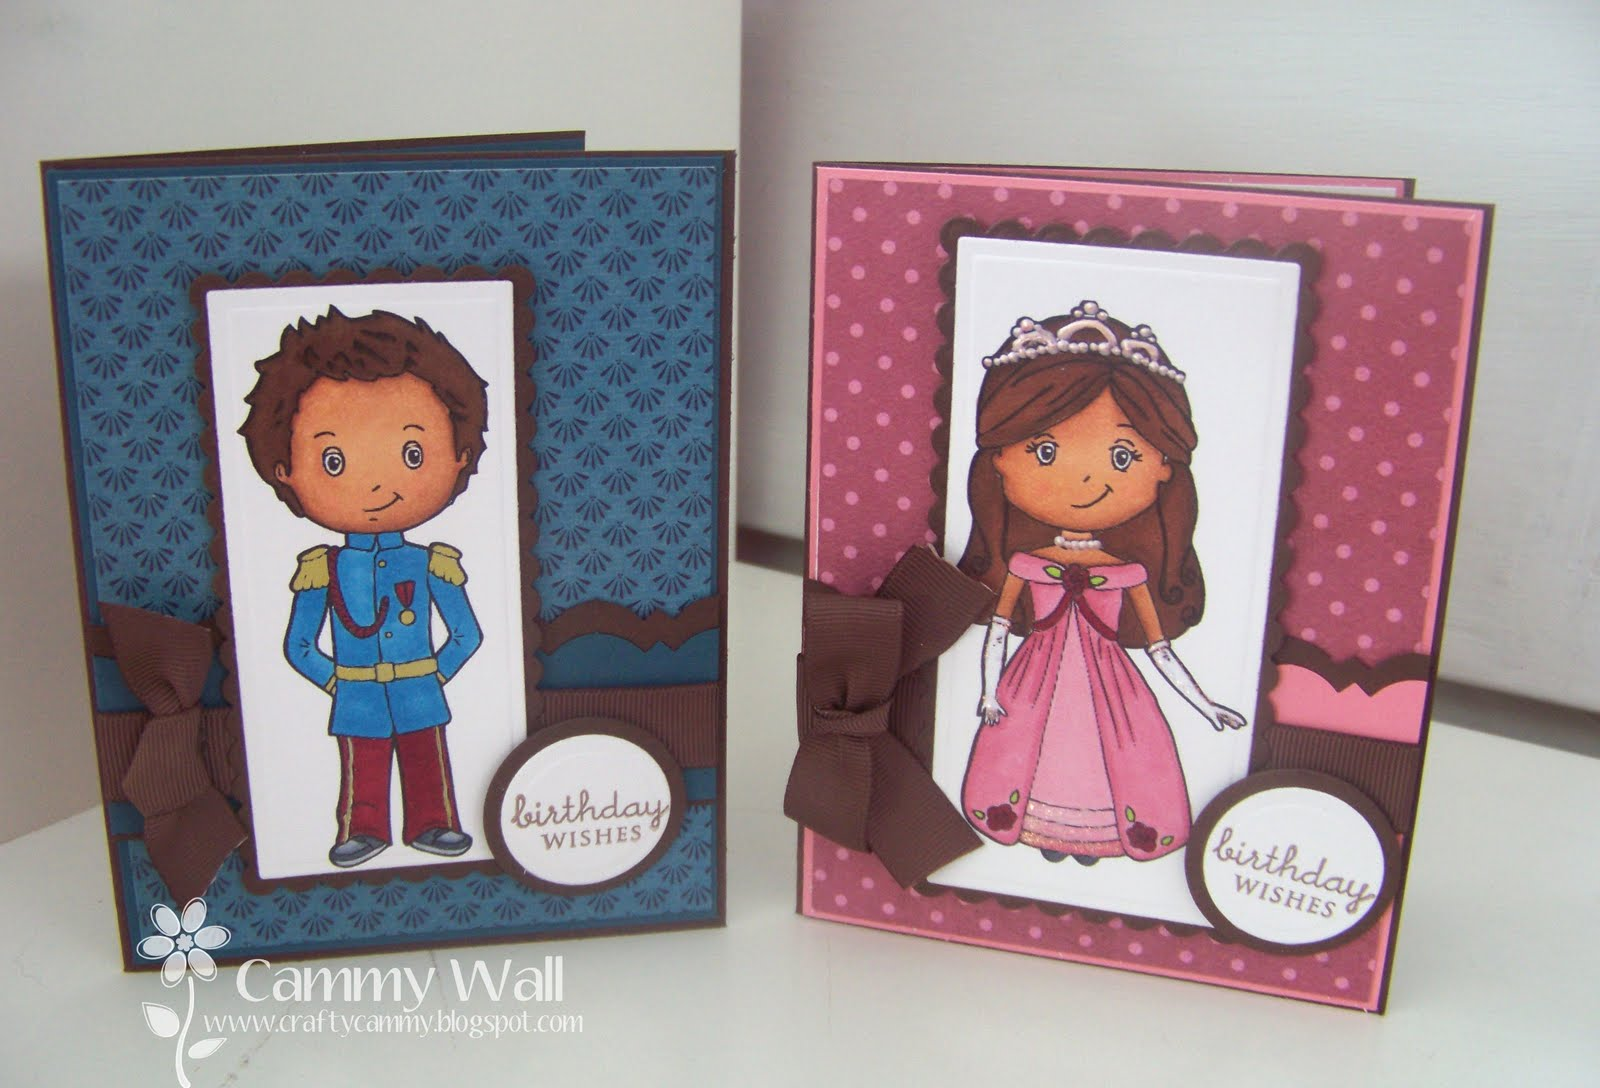 Prince Princess Birthday Wishes Pink Room Therapy Designs